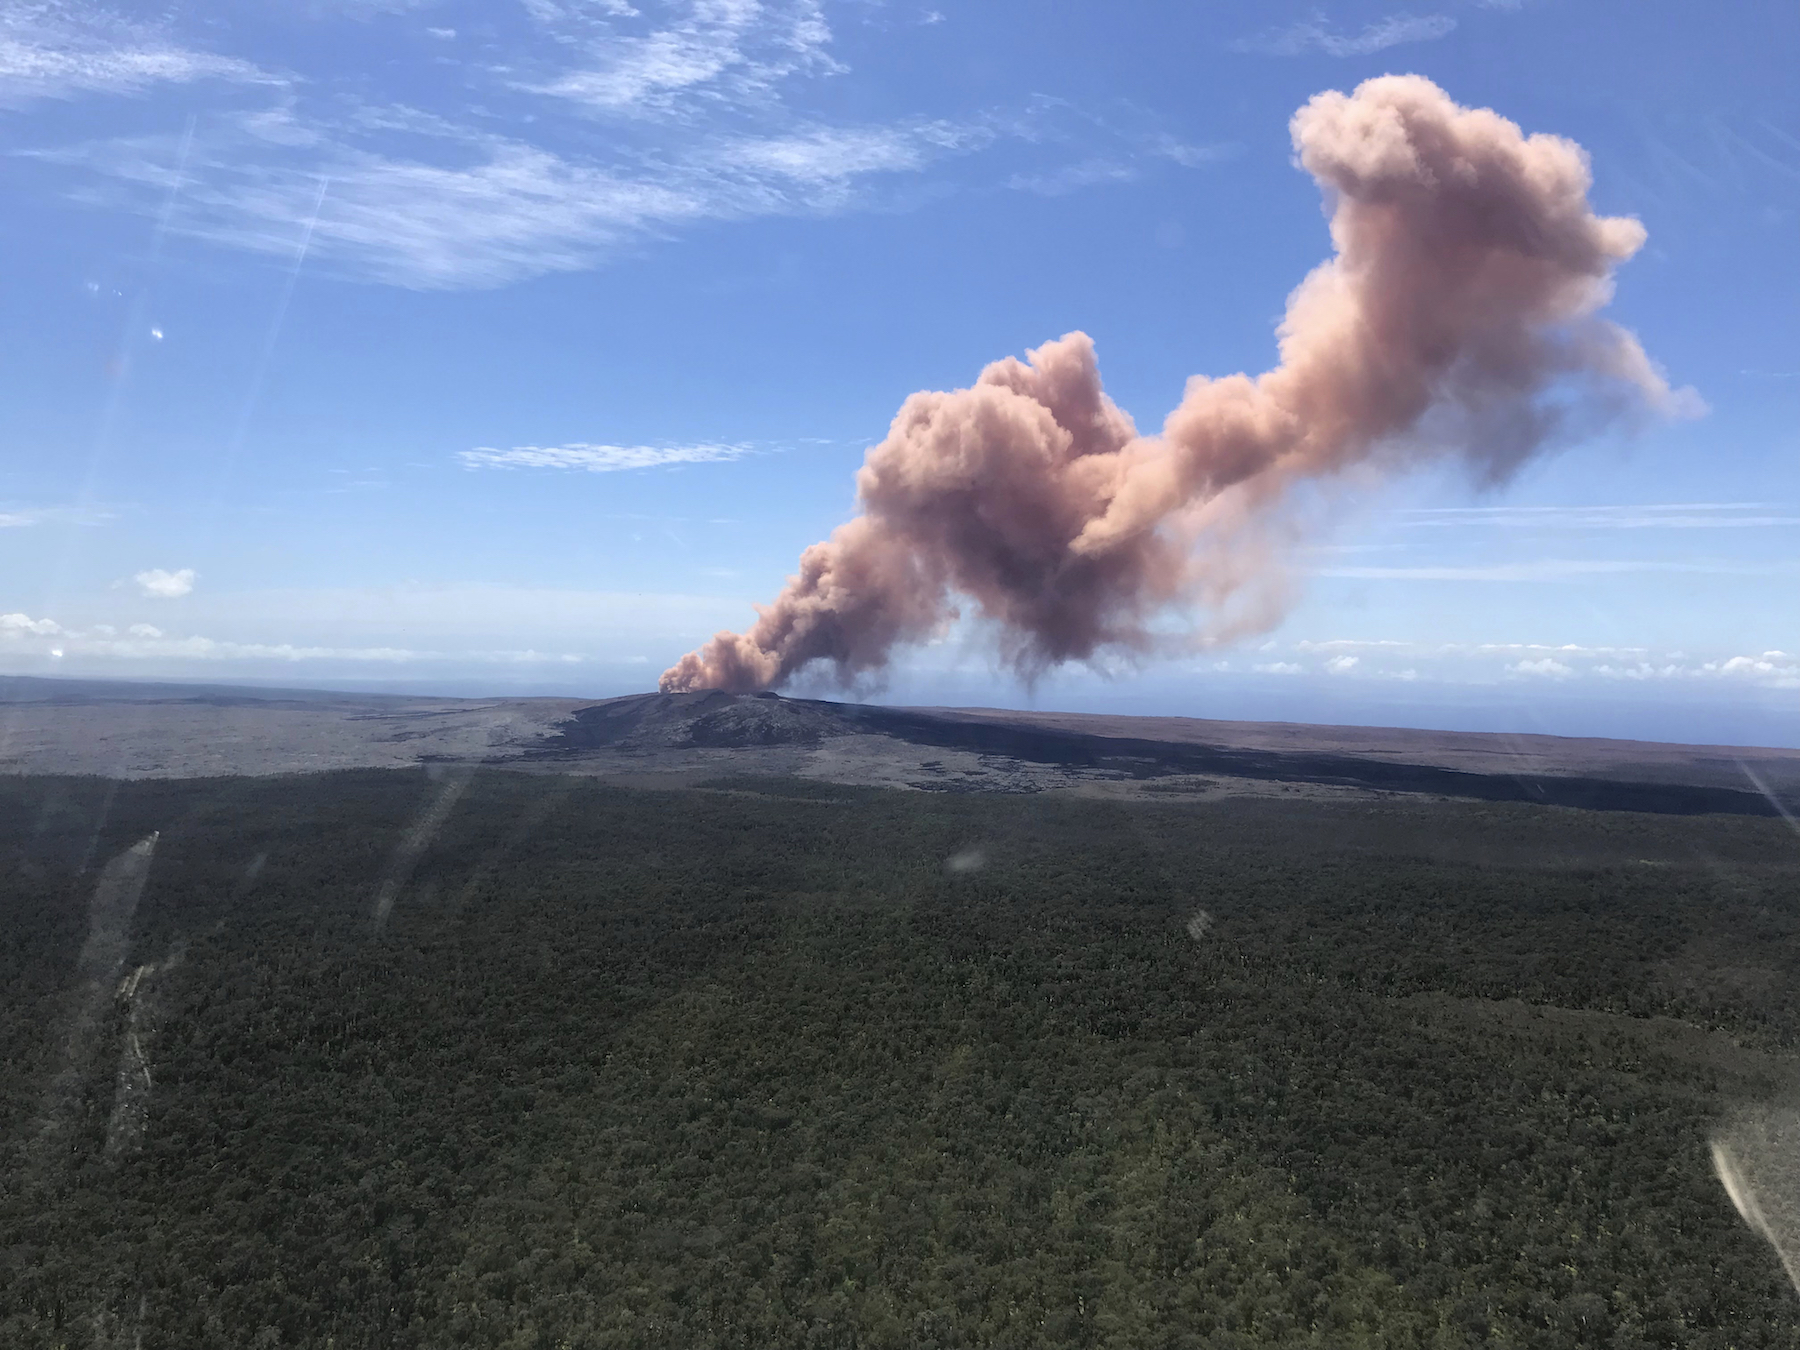 <div class='meta'><div class='origin-logo' data-origin='AP'></div><span class='caption-text' data-credit='USGS/AP'>In this photo released by U.S. Geological Survey, ash plume rises above the Puu Oo vent, on Hawaii's Kilauea Volcano Thursday, May 3, 2018, in Hawaii Volcanoes National Park.</span></div>